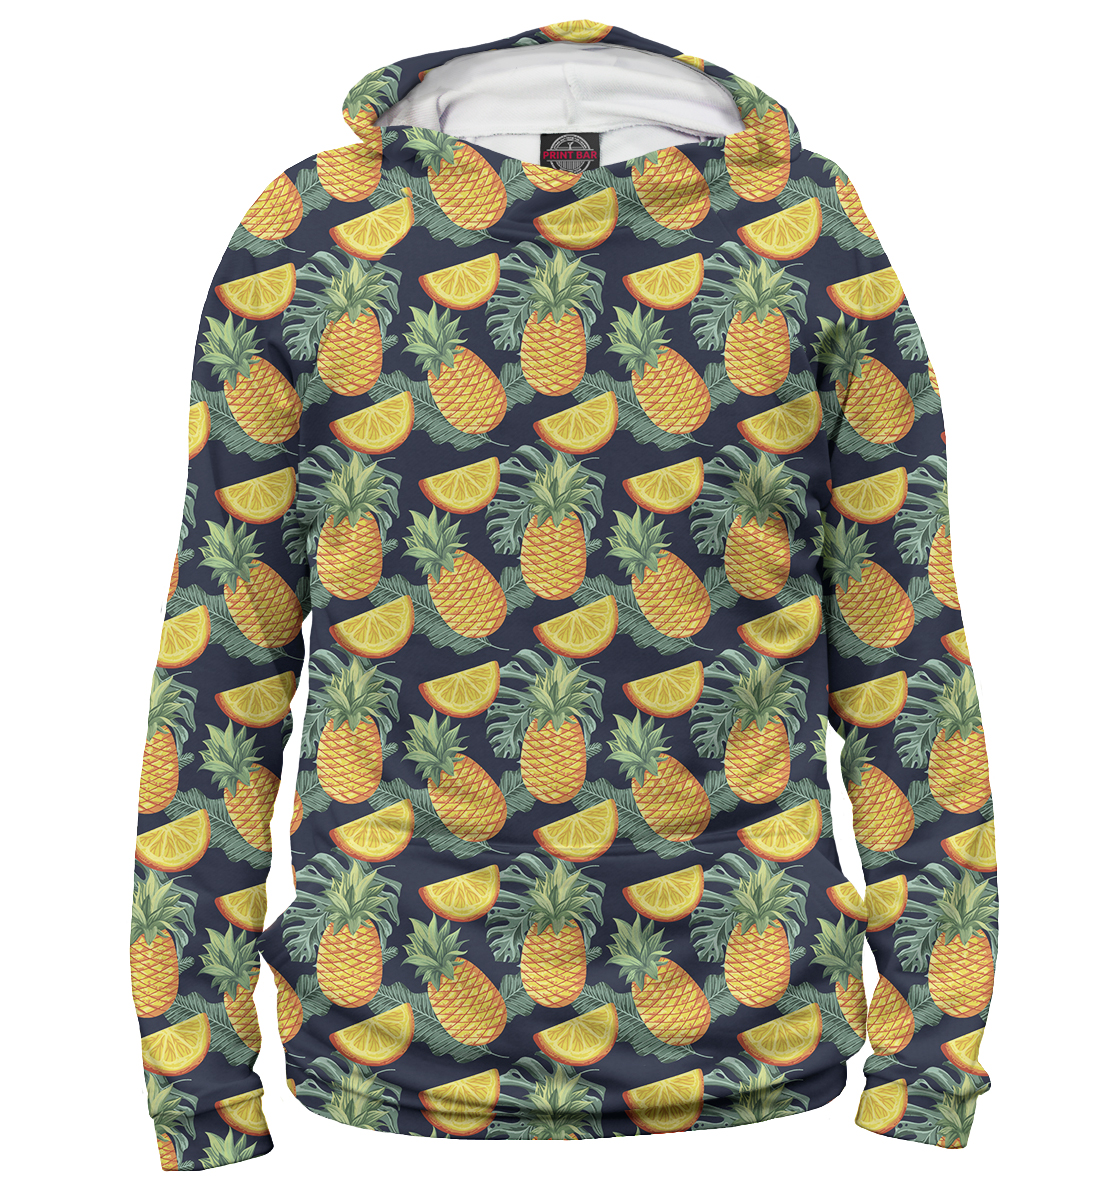 Many Pineapples